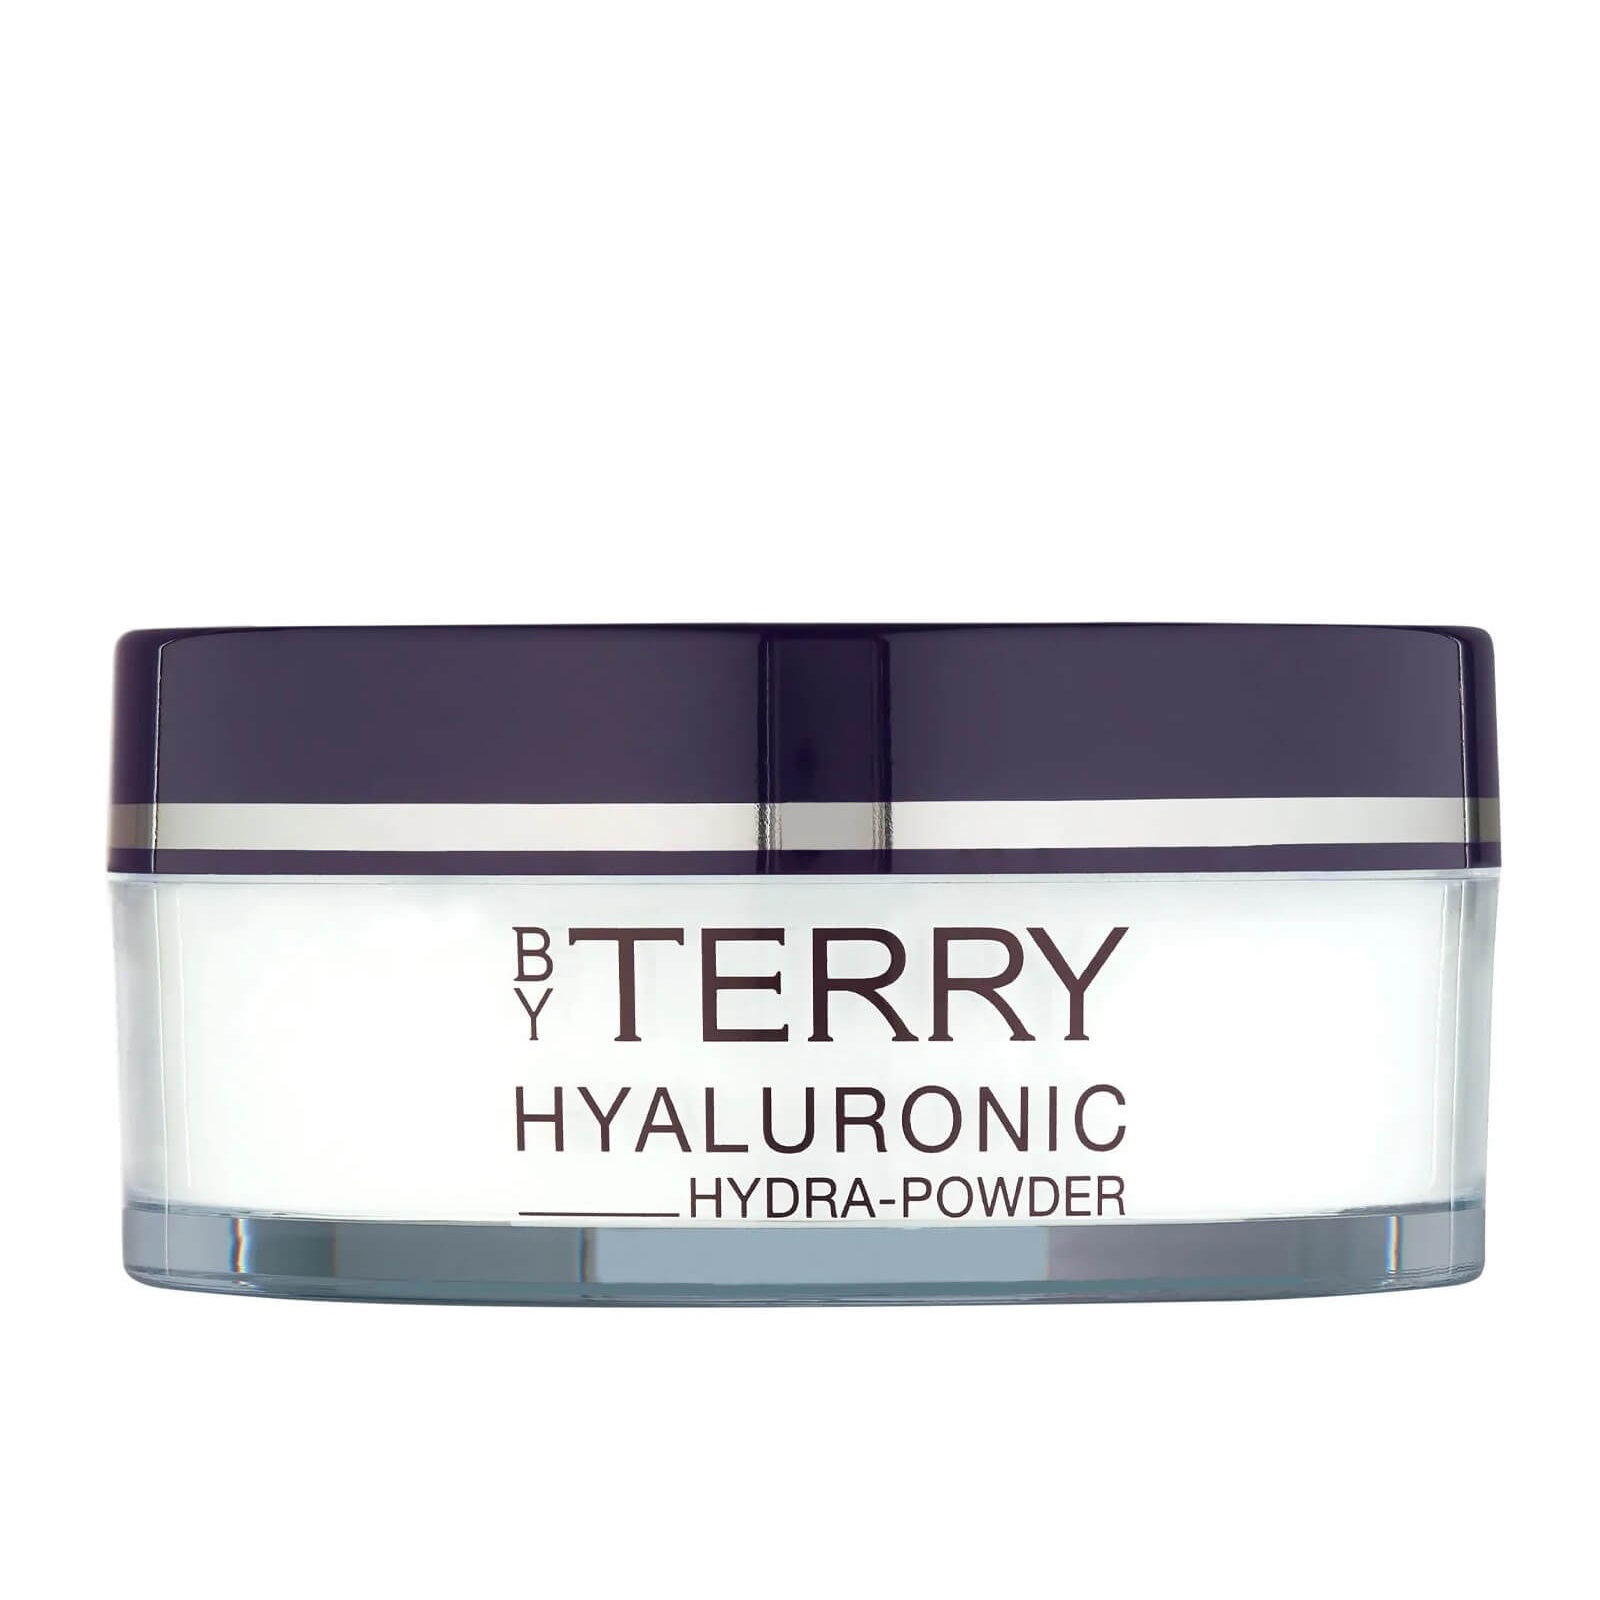 Lookfantastic: 40% OFF By Terry Hyaluronic Hydra-Powder